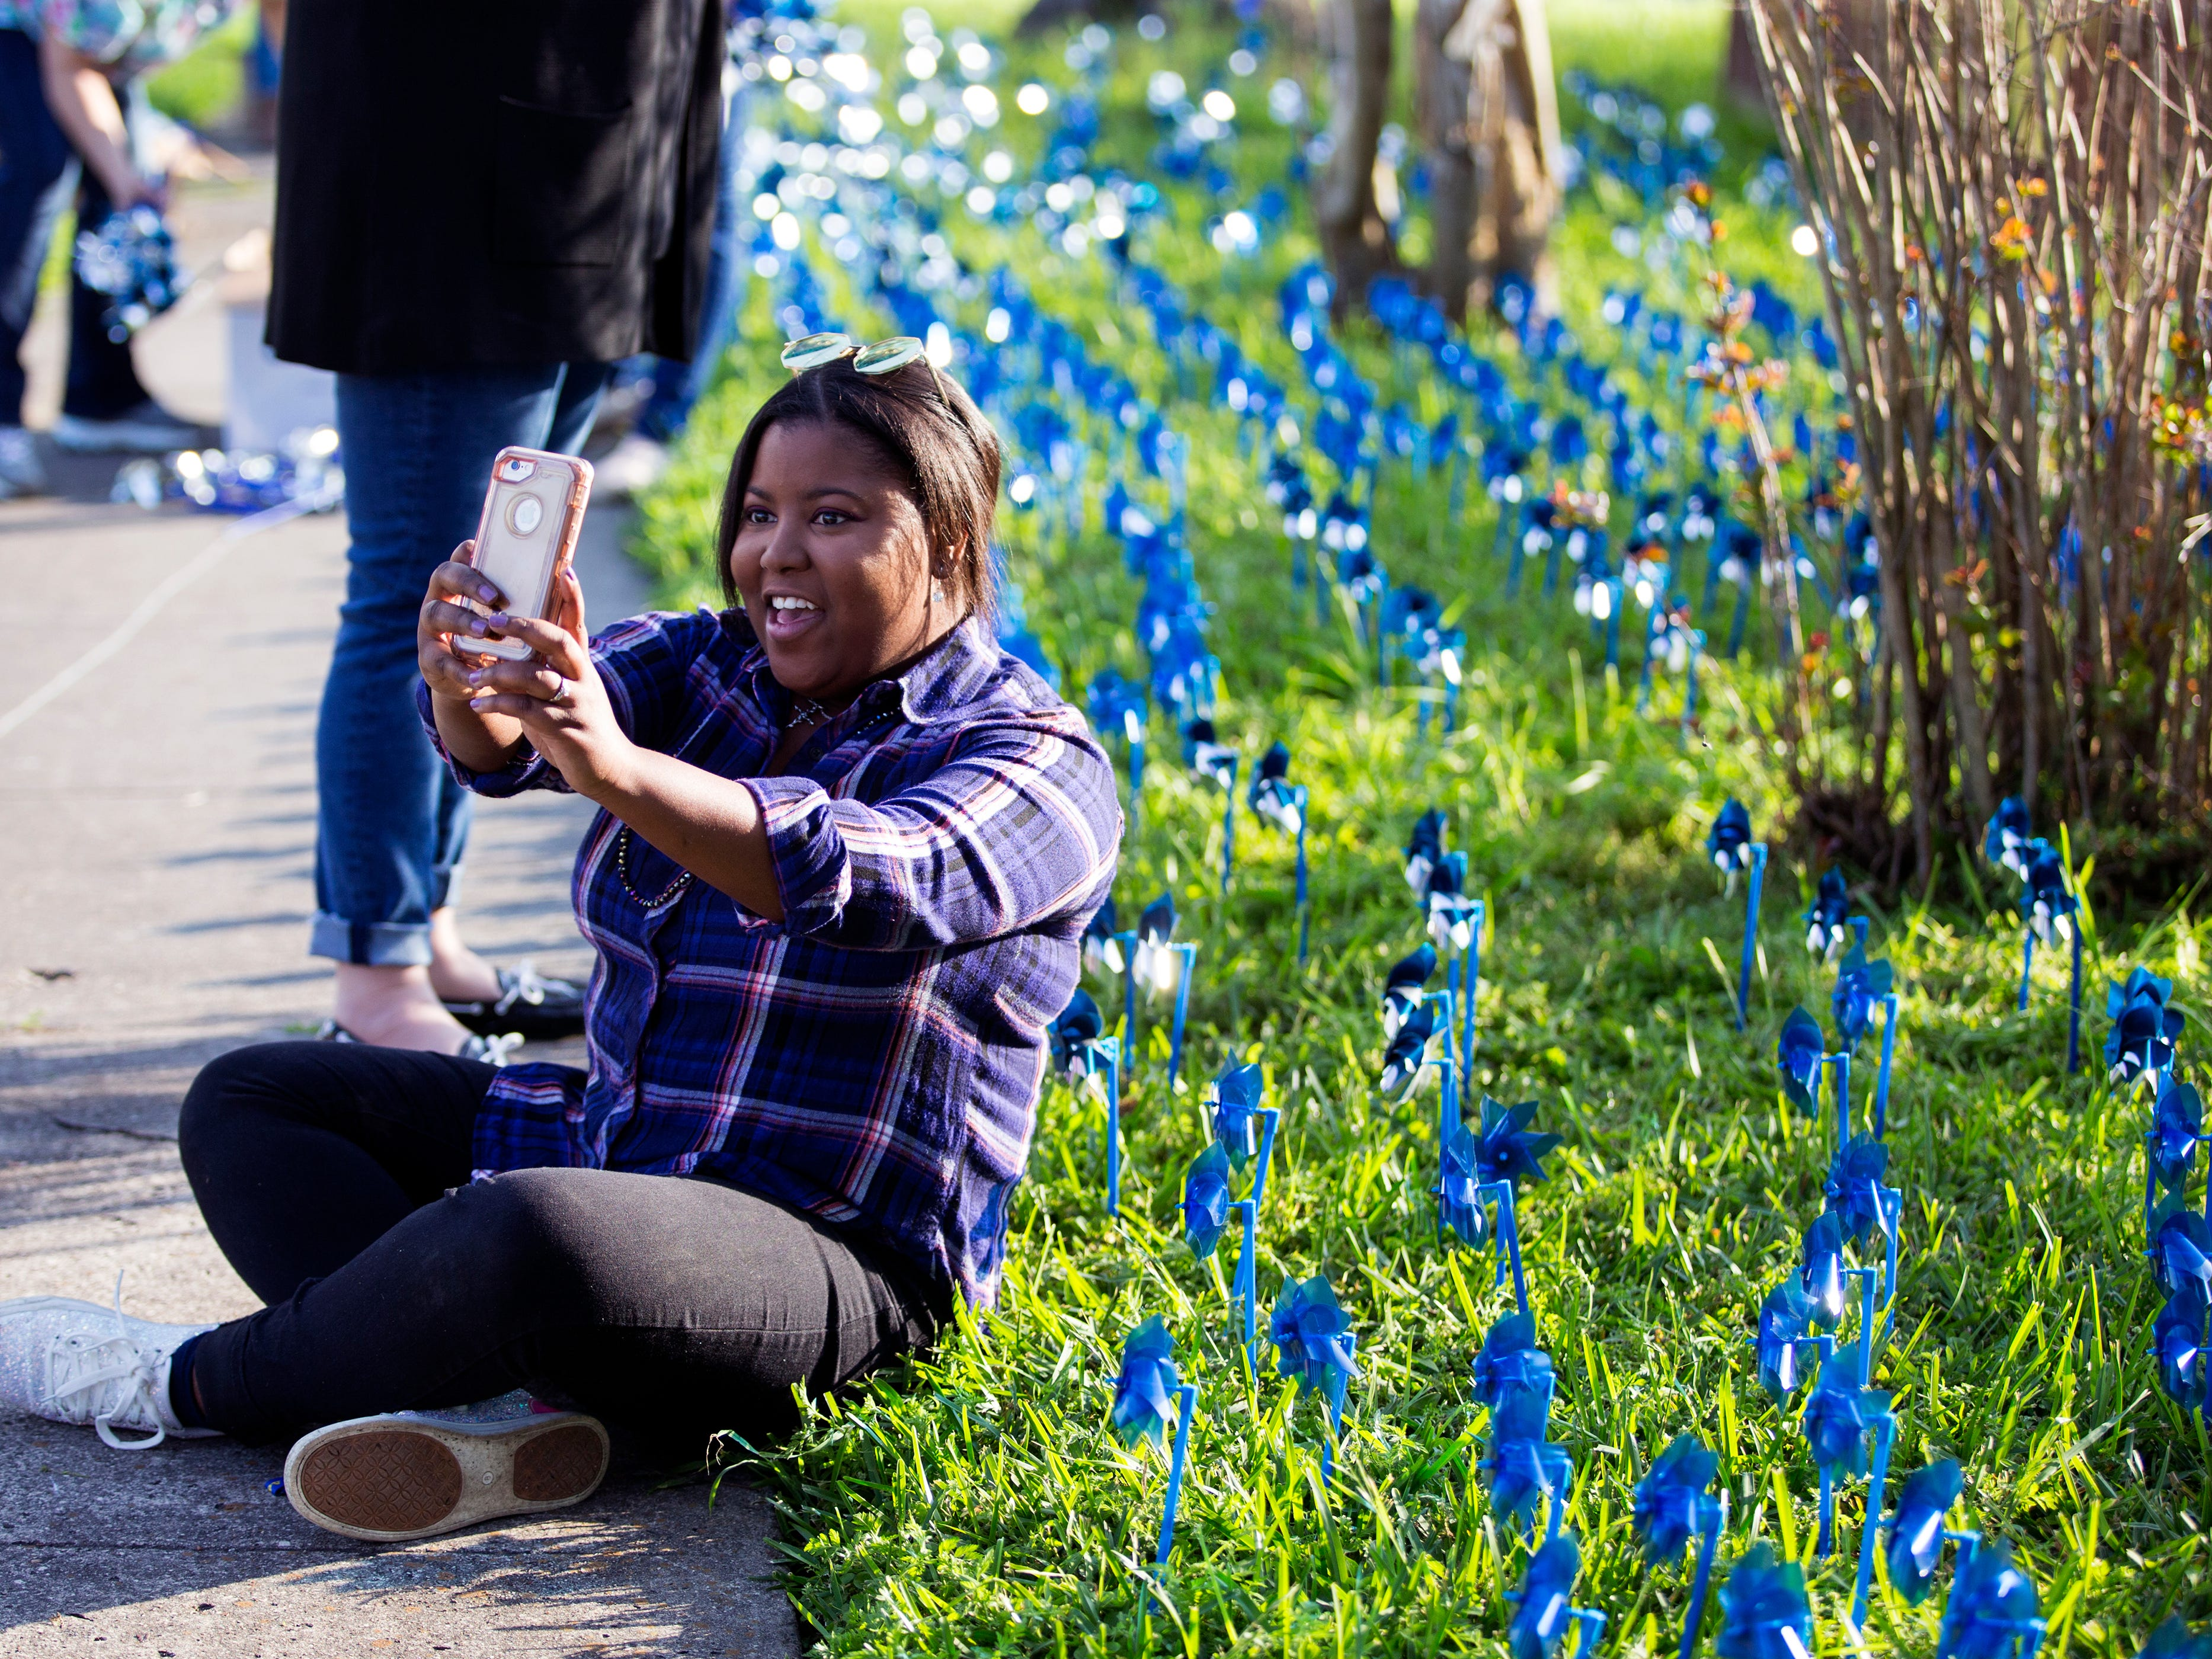 Ruthie Johnson takes a selfie after helping install pinwheels in front of CASA of the Coastal Bend on Friday, March 29, 2019. The 1,066 pinwheels represent a child from the Coastal Bend who was in foster care last year and will stay up throughout the month of April, which is Child Abuse Awareness Month.